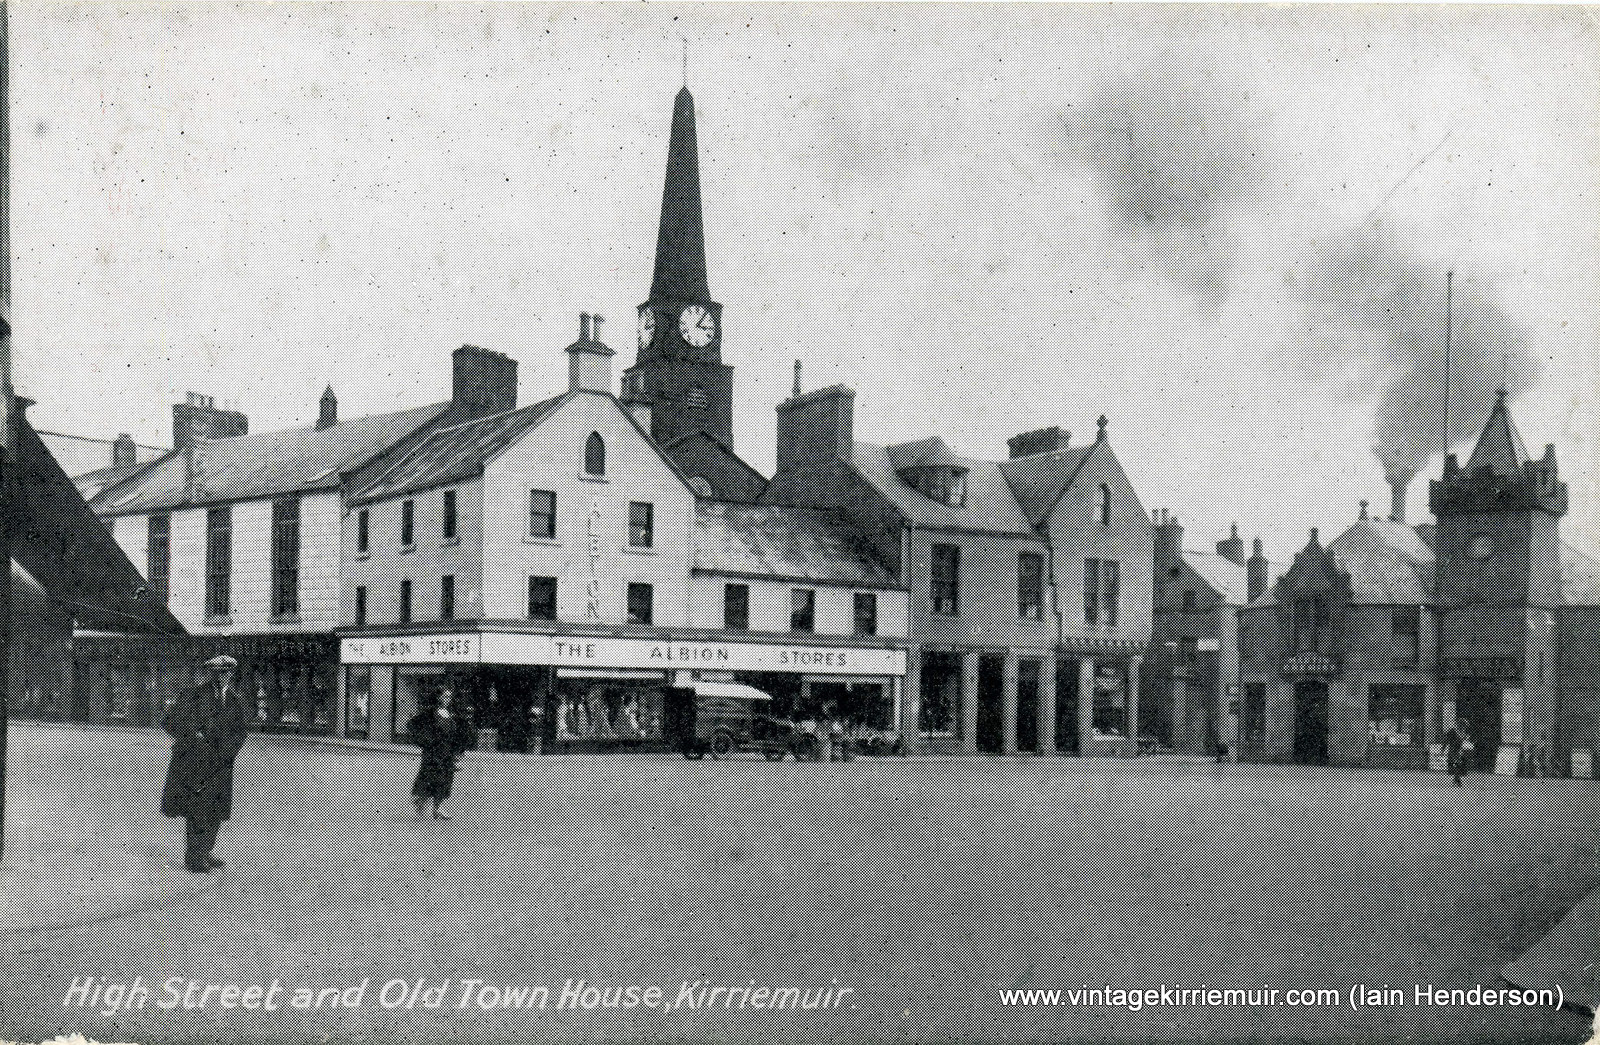 High Street and Old Town House